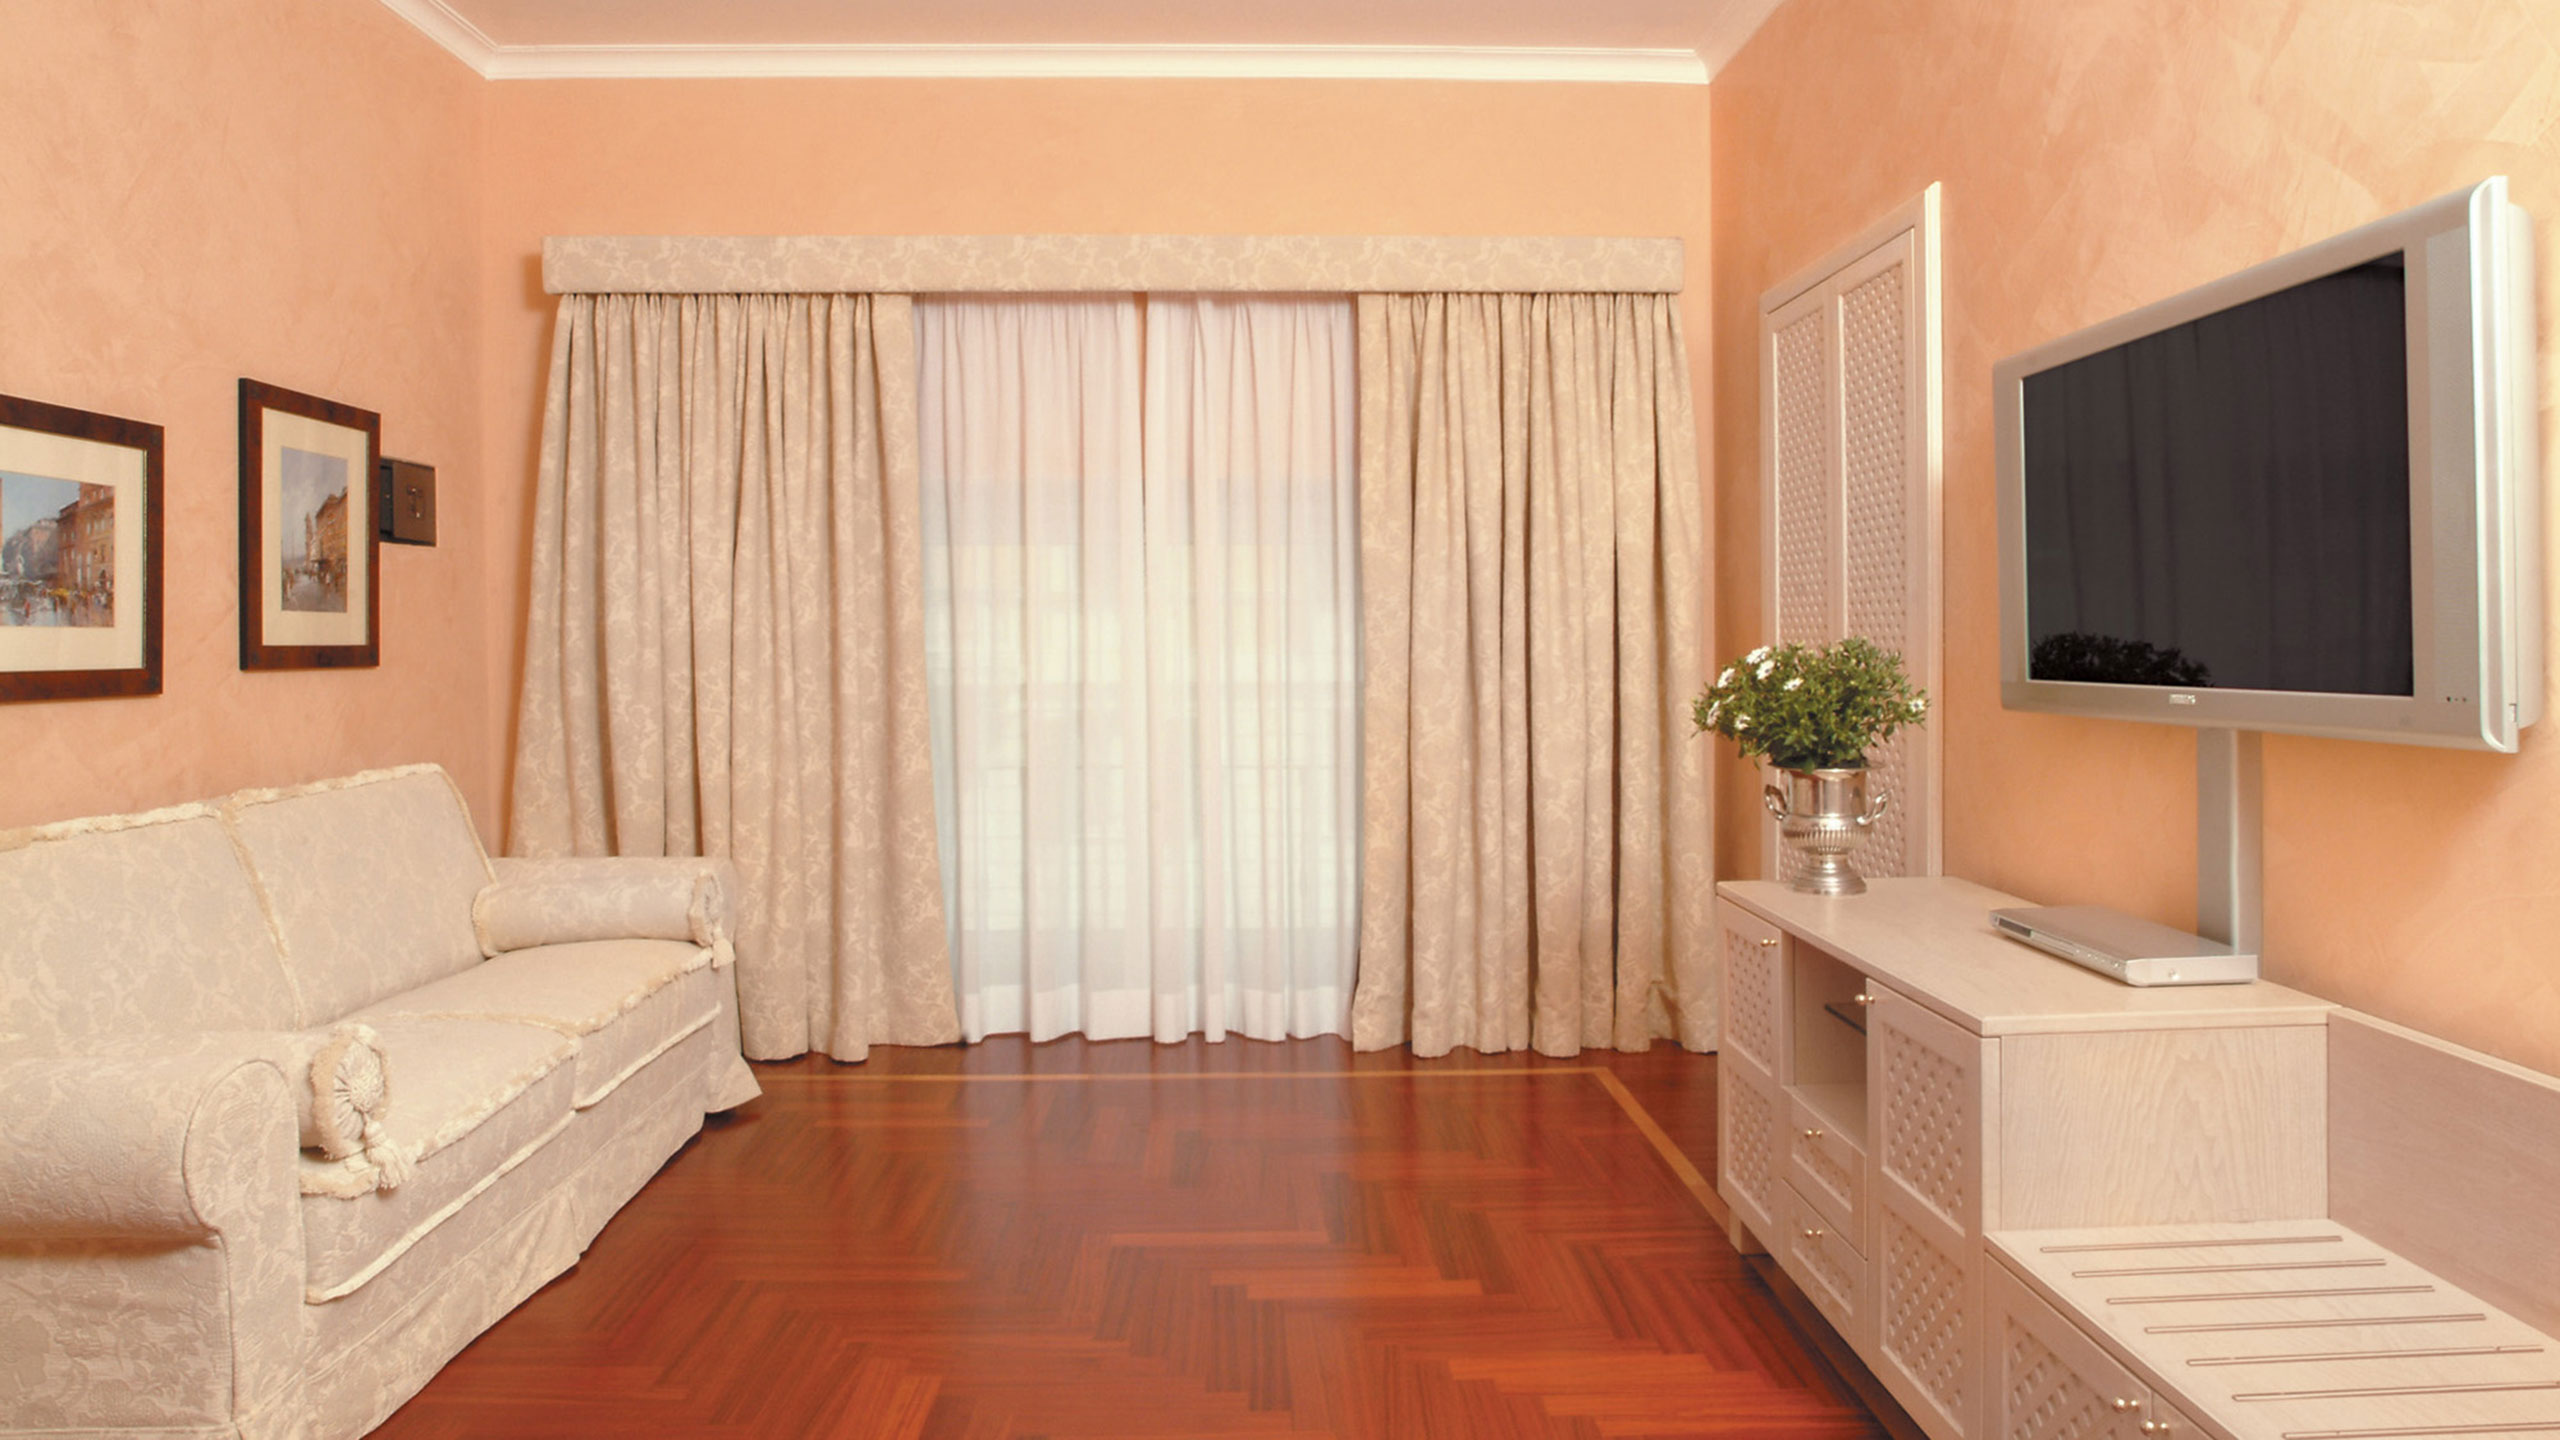 colosseo-suites-roma-camere-01